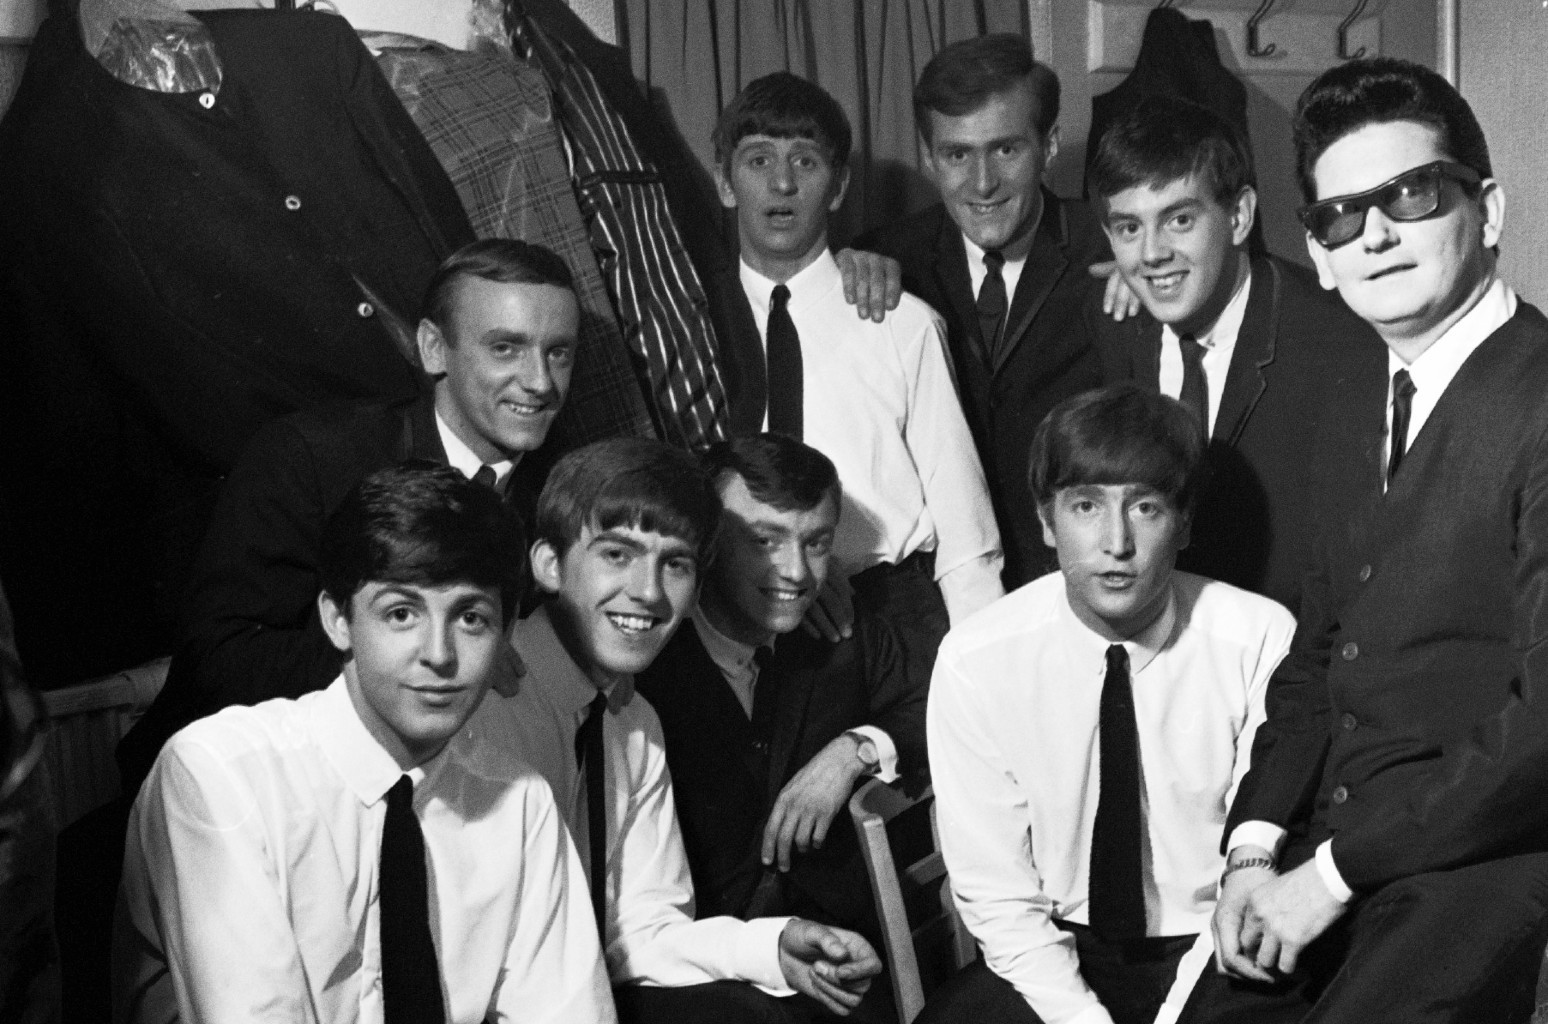 The Beatles, Gerry and the Pacemakers, and Roy Orbison